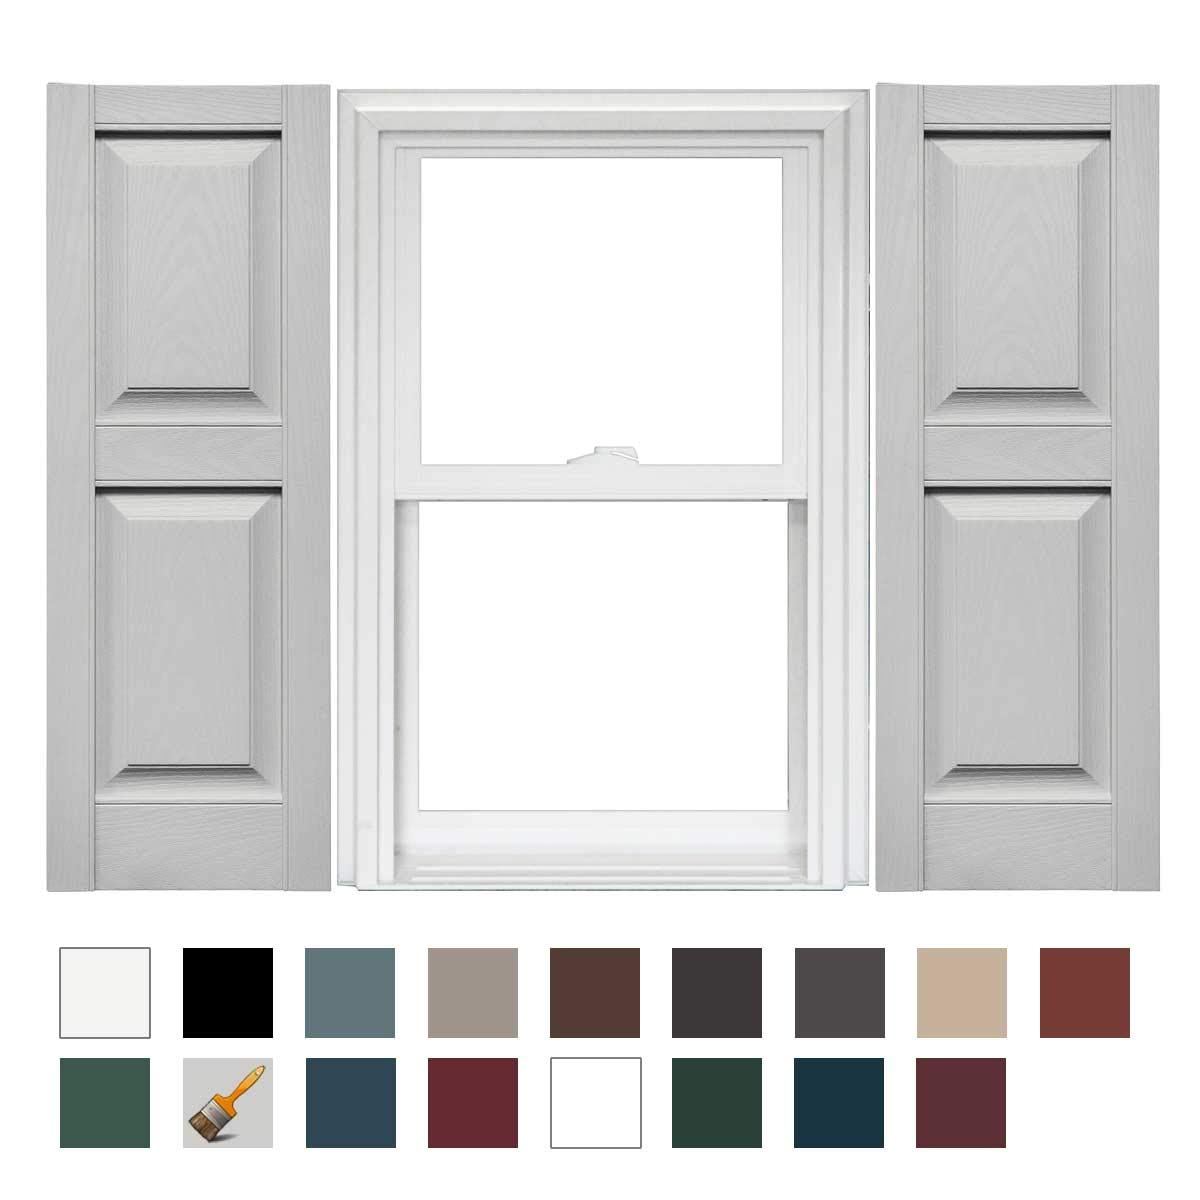 Mid America Williamsburg Raised Panel Vinyl Standard Shutter - 1 Pair 14.75 x 63 030 Paintable